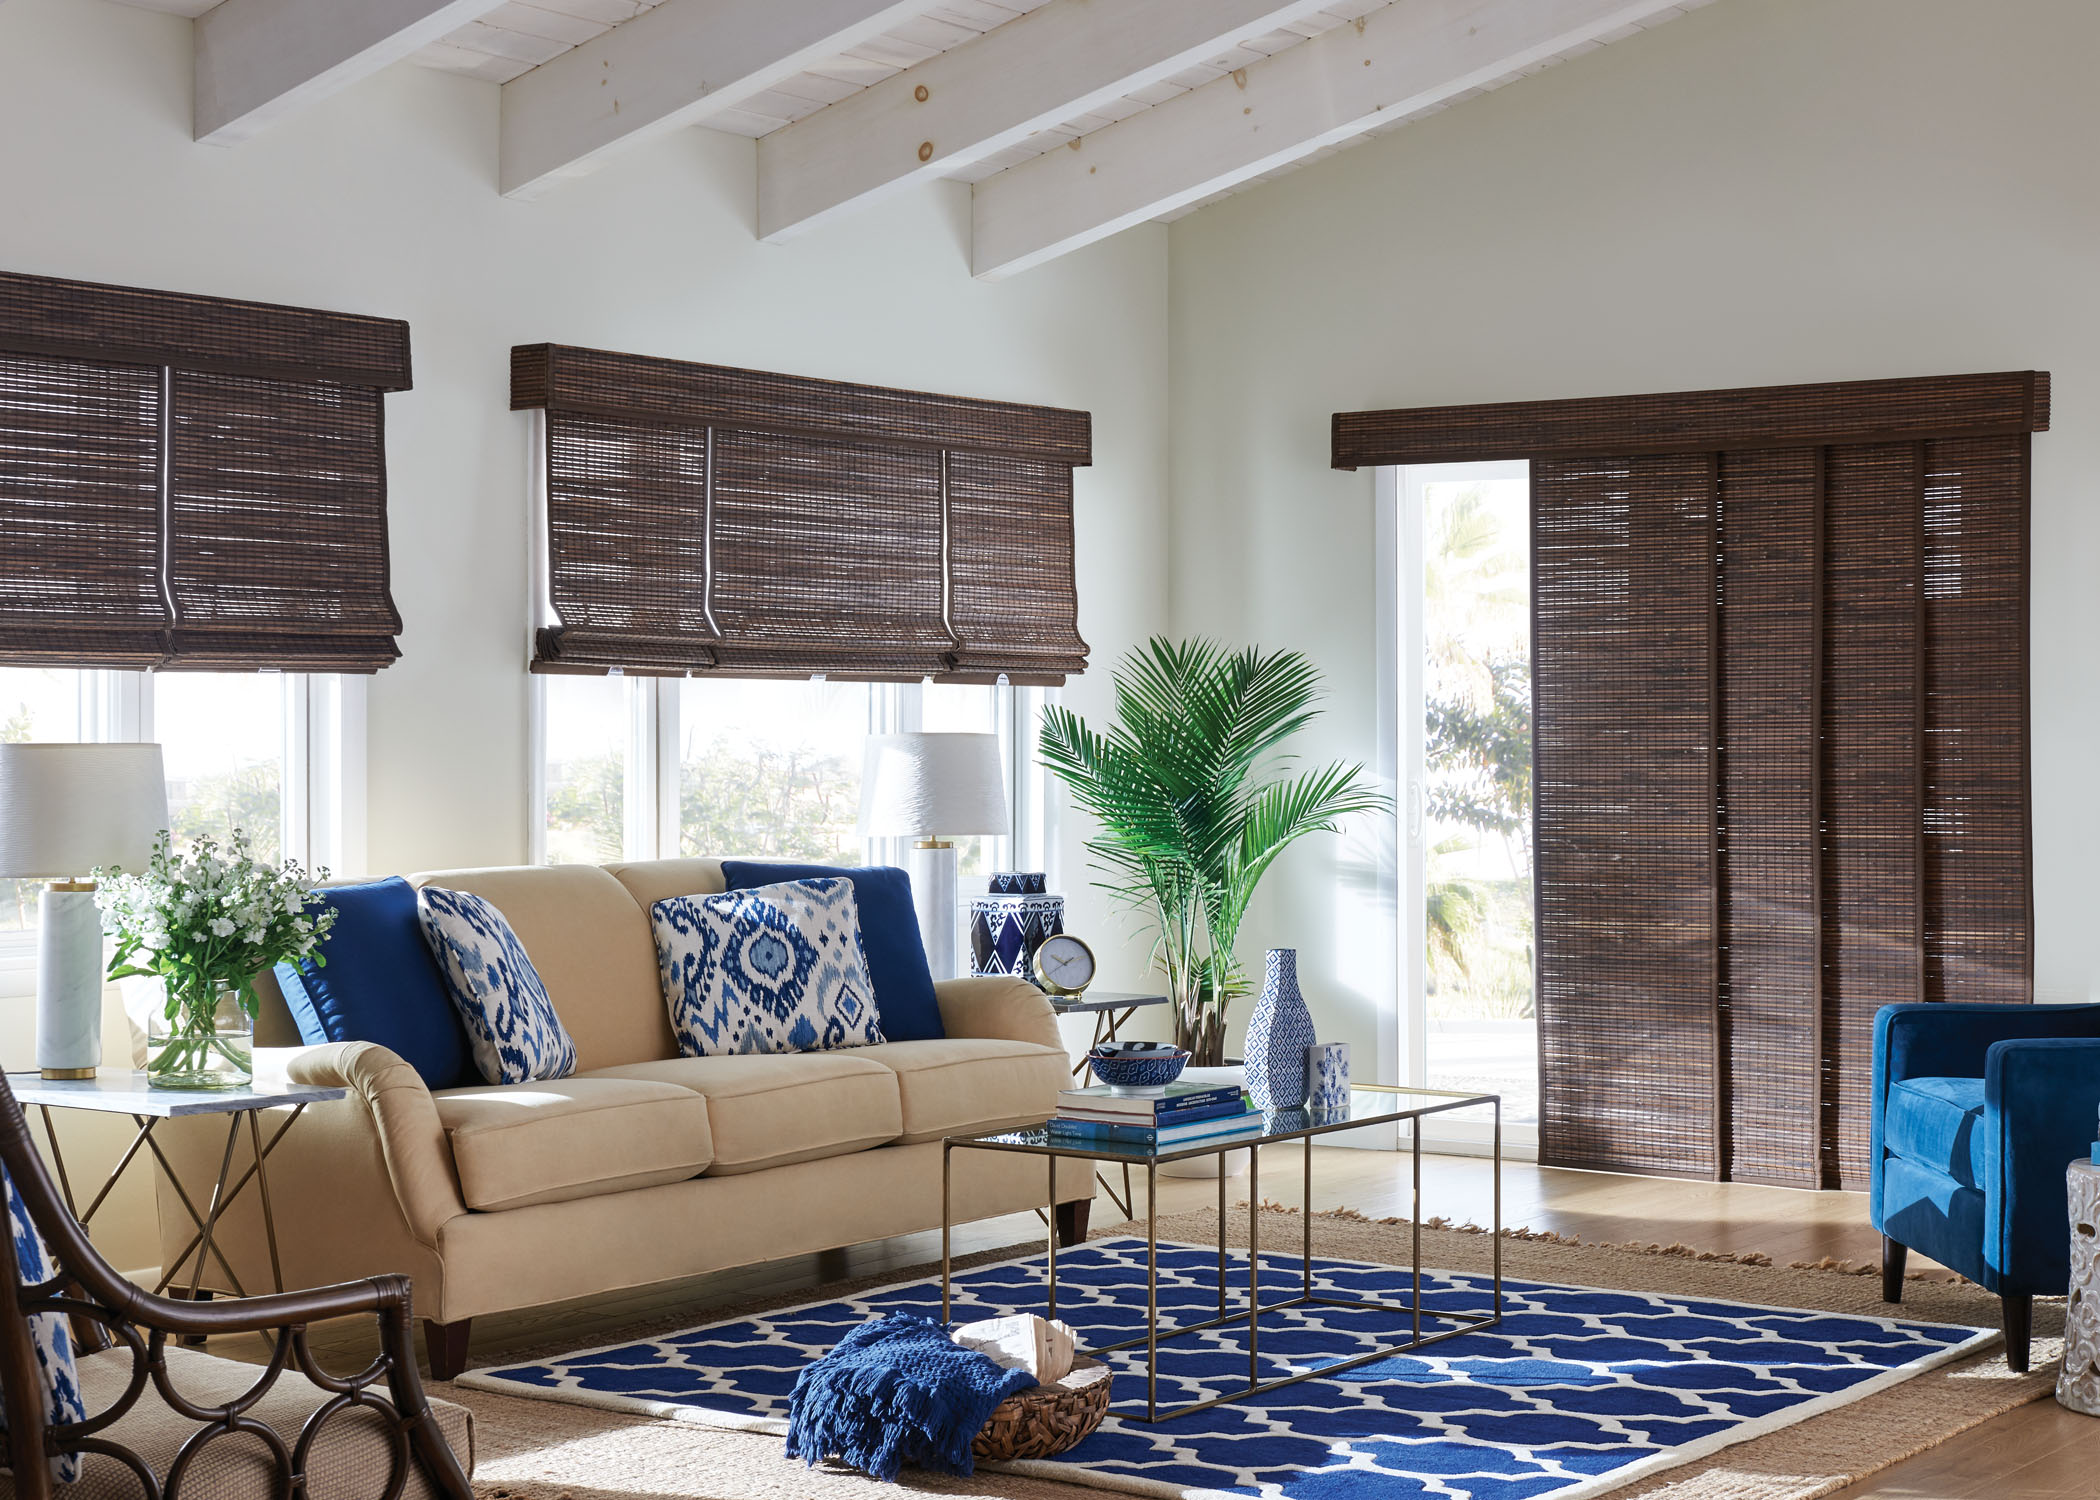 SHADES - Shades are the perfect blend of form and function—they offer a wide range of colours, textures, styles, and they provide you with precise light control, easy operation, and protection from excess heat.